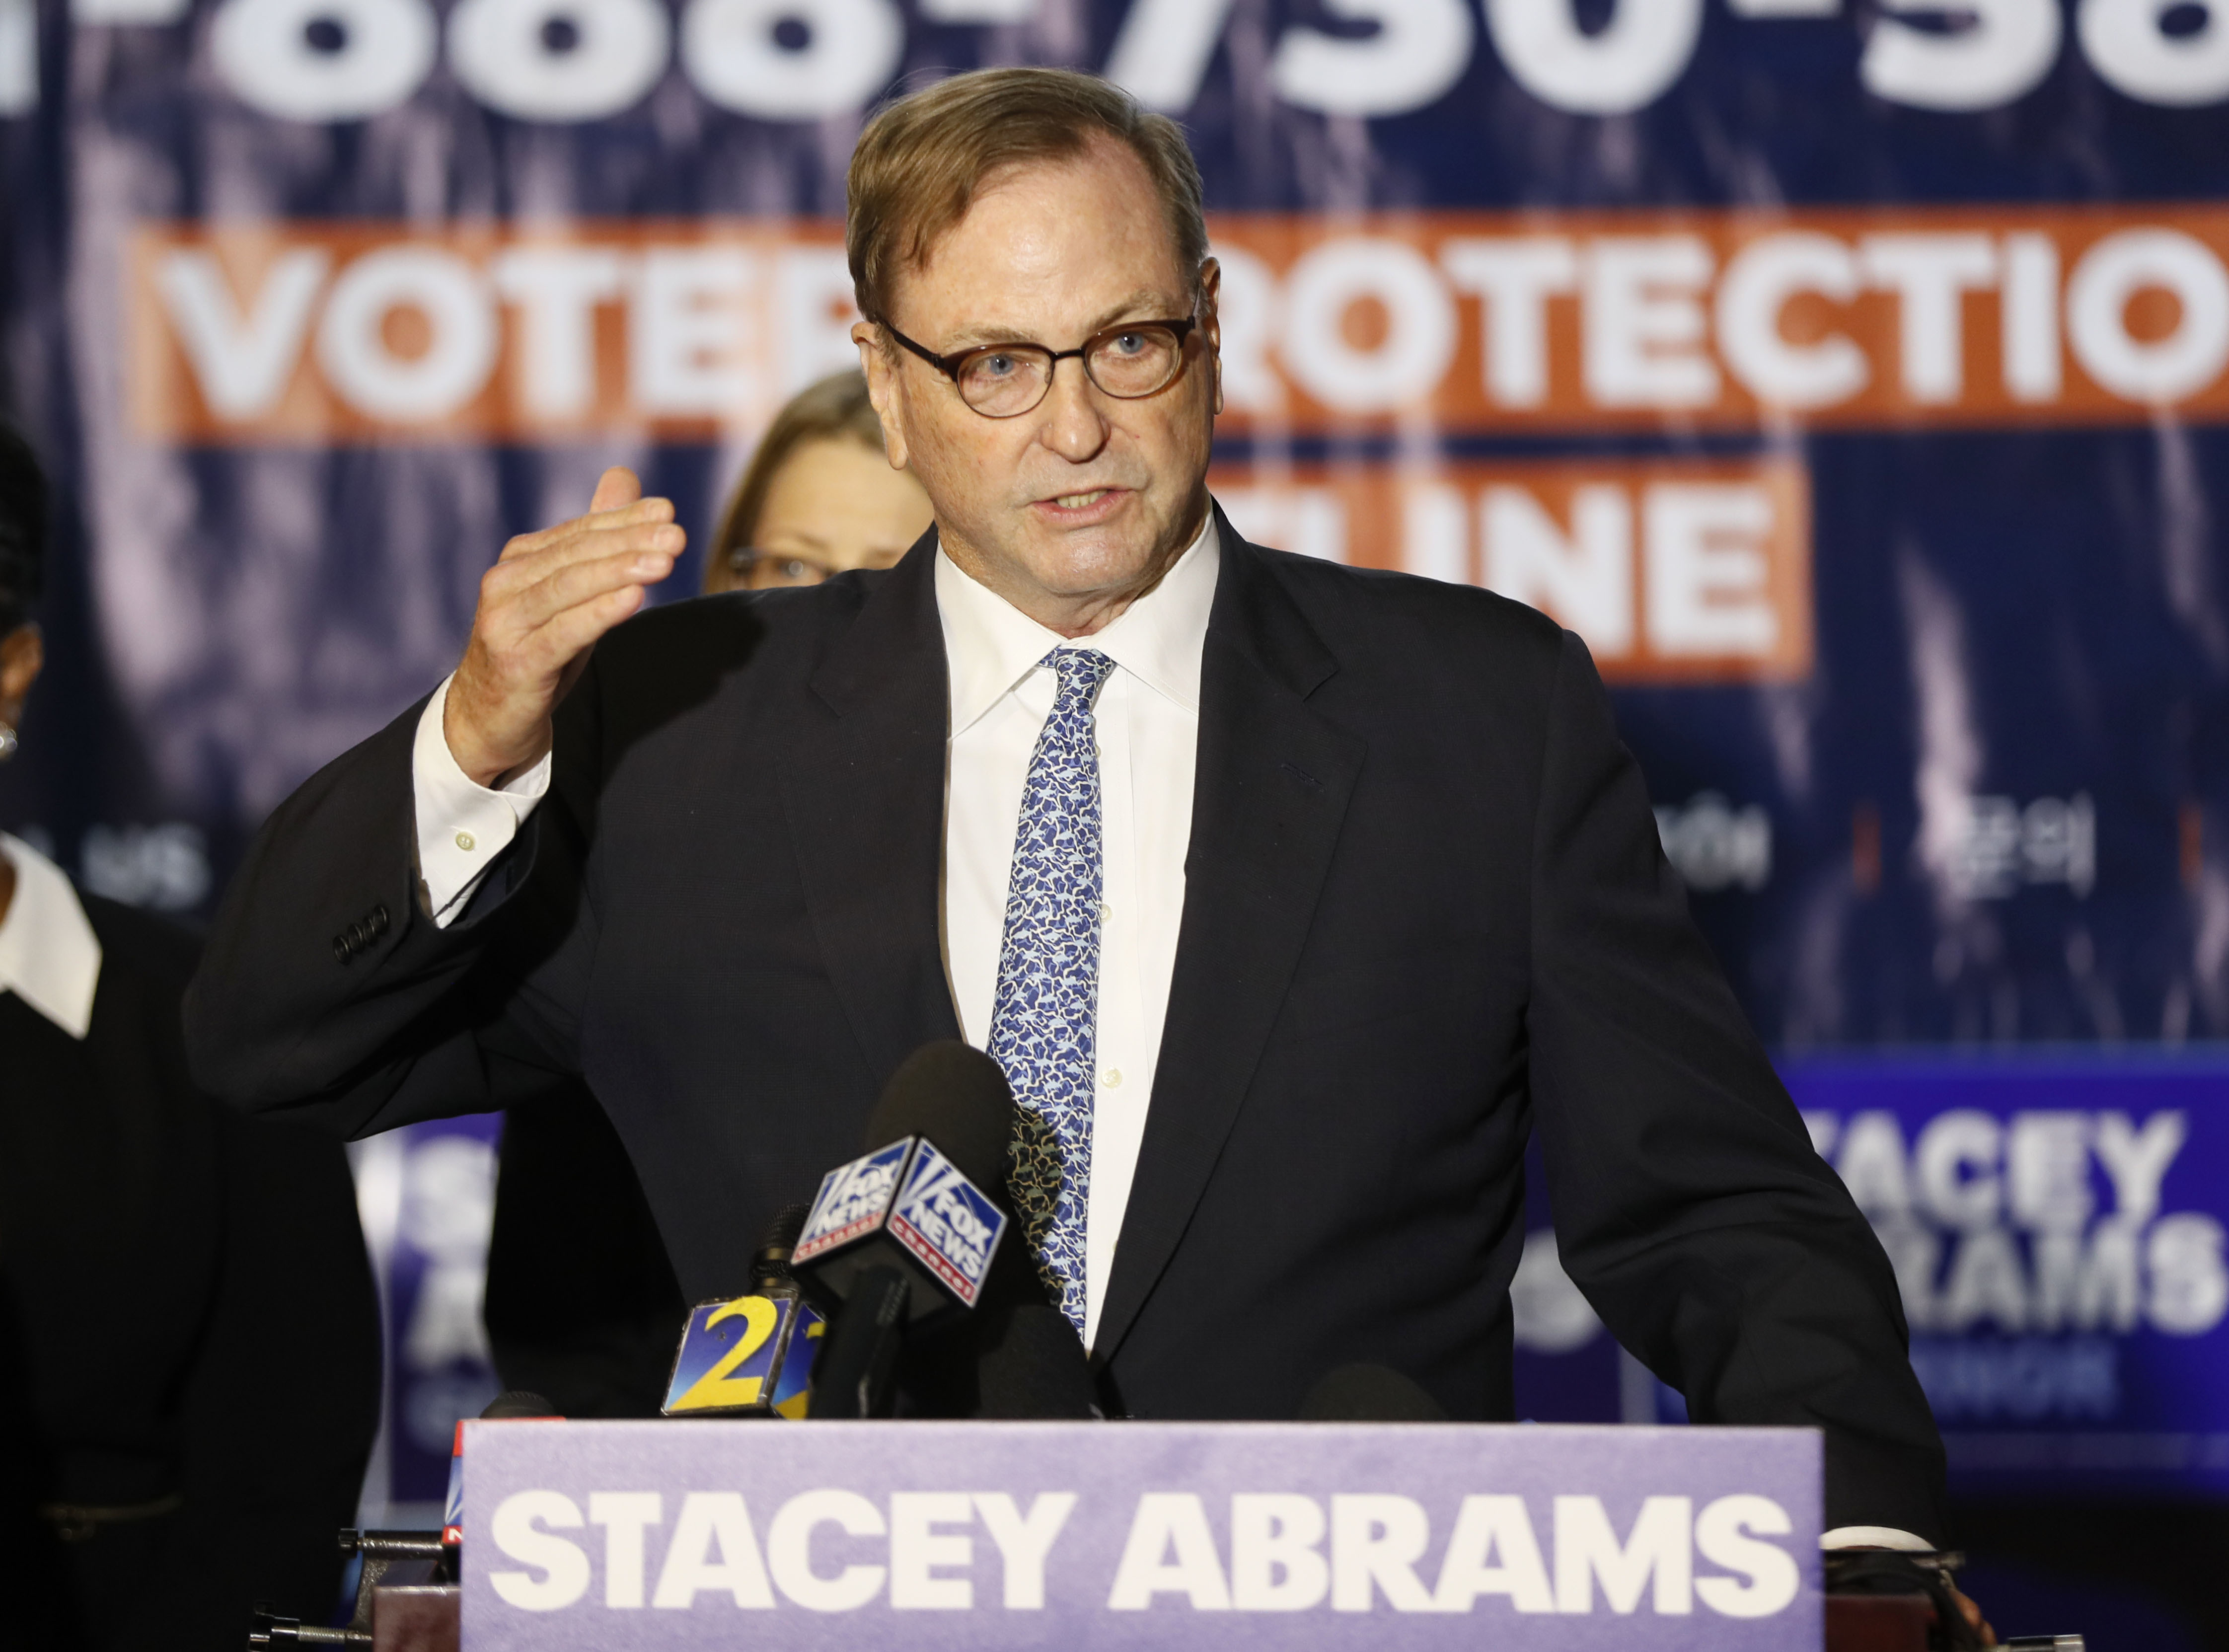 John Chandler, one of Stacey Abrams' attorneys, speaks during a news conference Thursday, Nov. 8, 2018, in Atlanta. Republican Brian Kemp resigned Thursday as Georgia's secretary of state, a day after his campaign said he's captured enough votes to become governor despite his rival's refusal to concede. Abrams' campaign immediately responded by refusing to accept Kemp's declaration of victory in the race and demanding that state officials